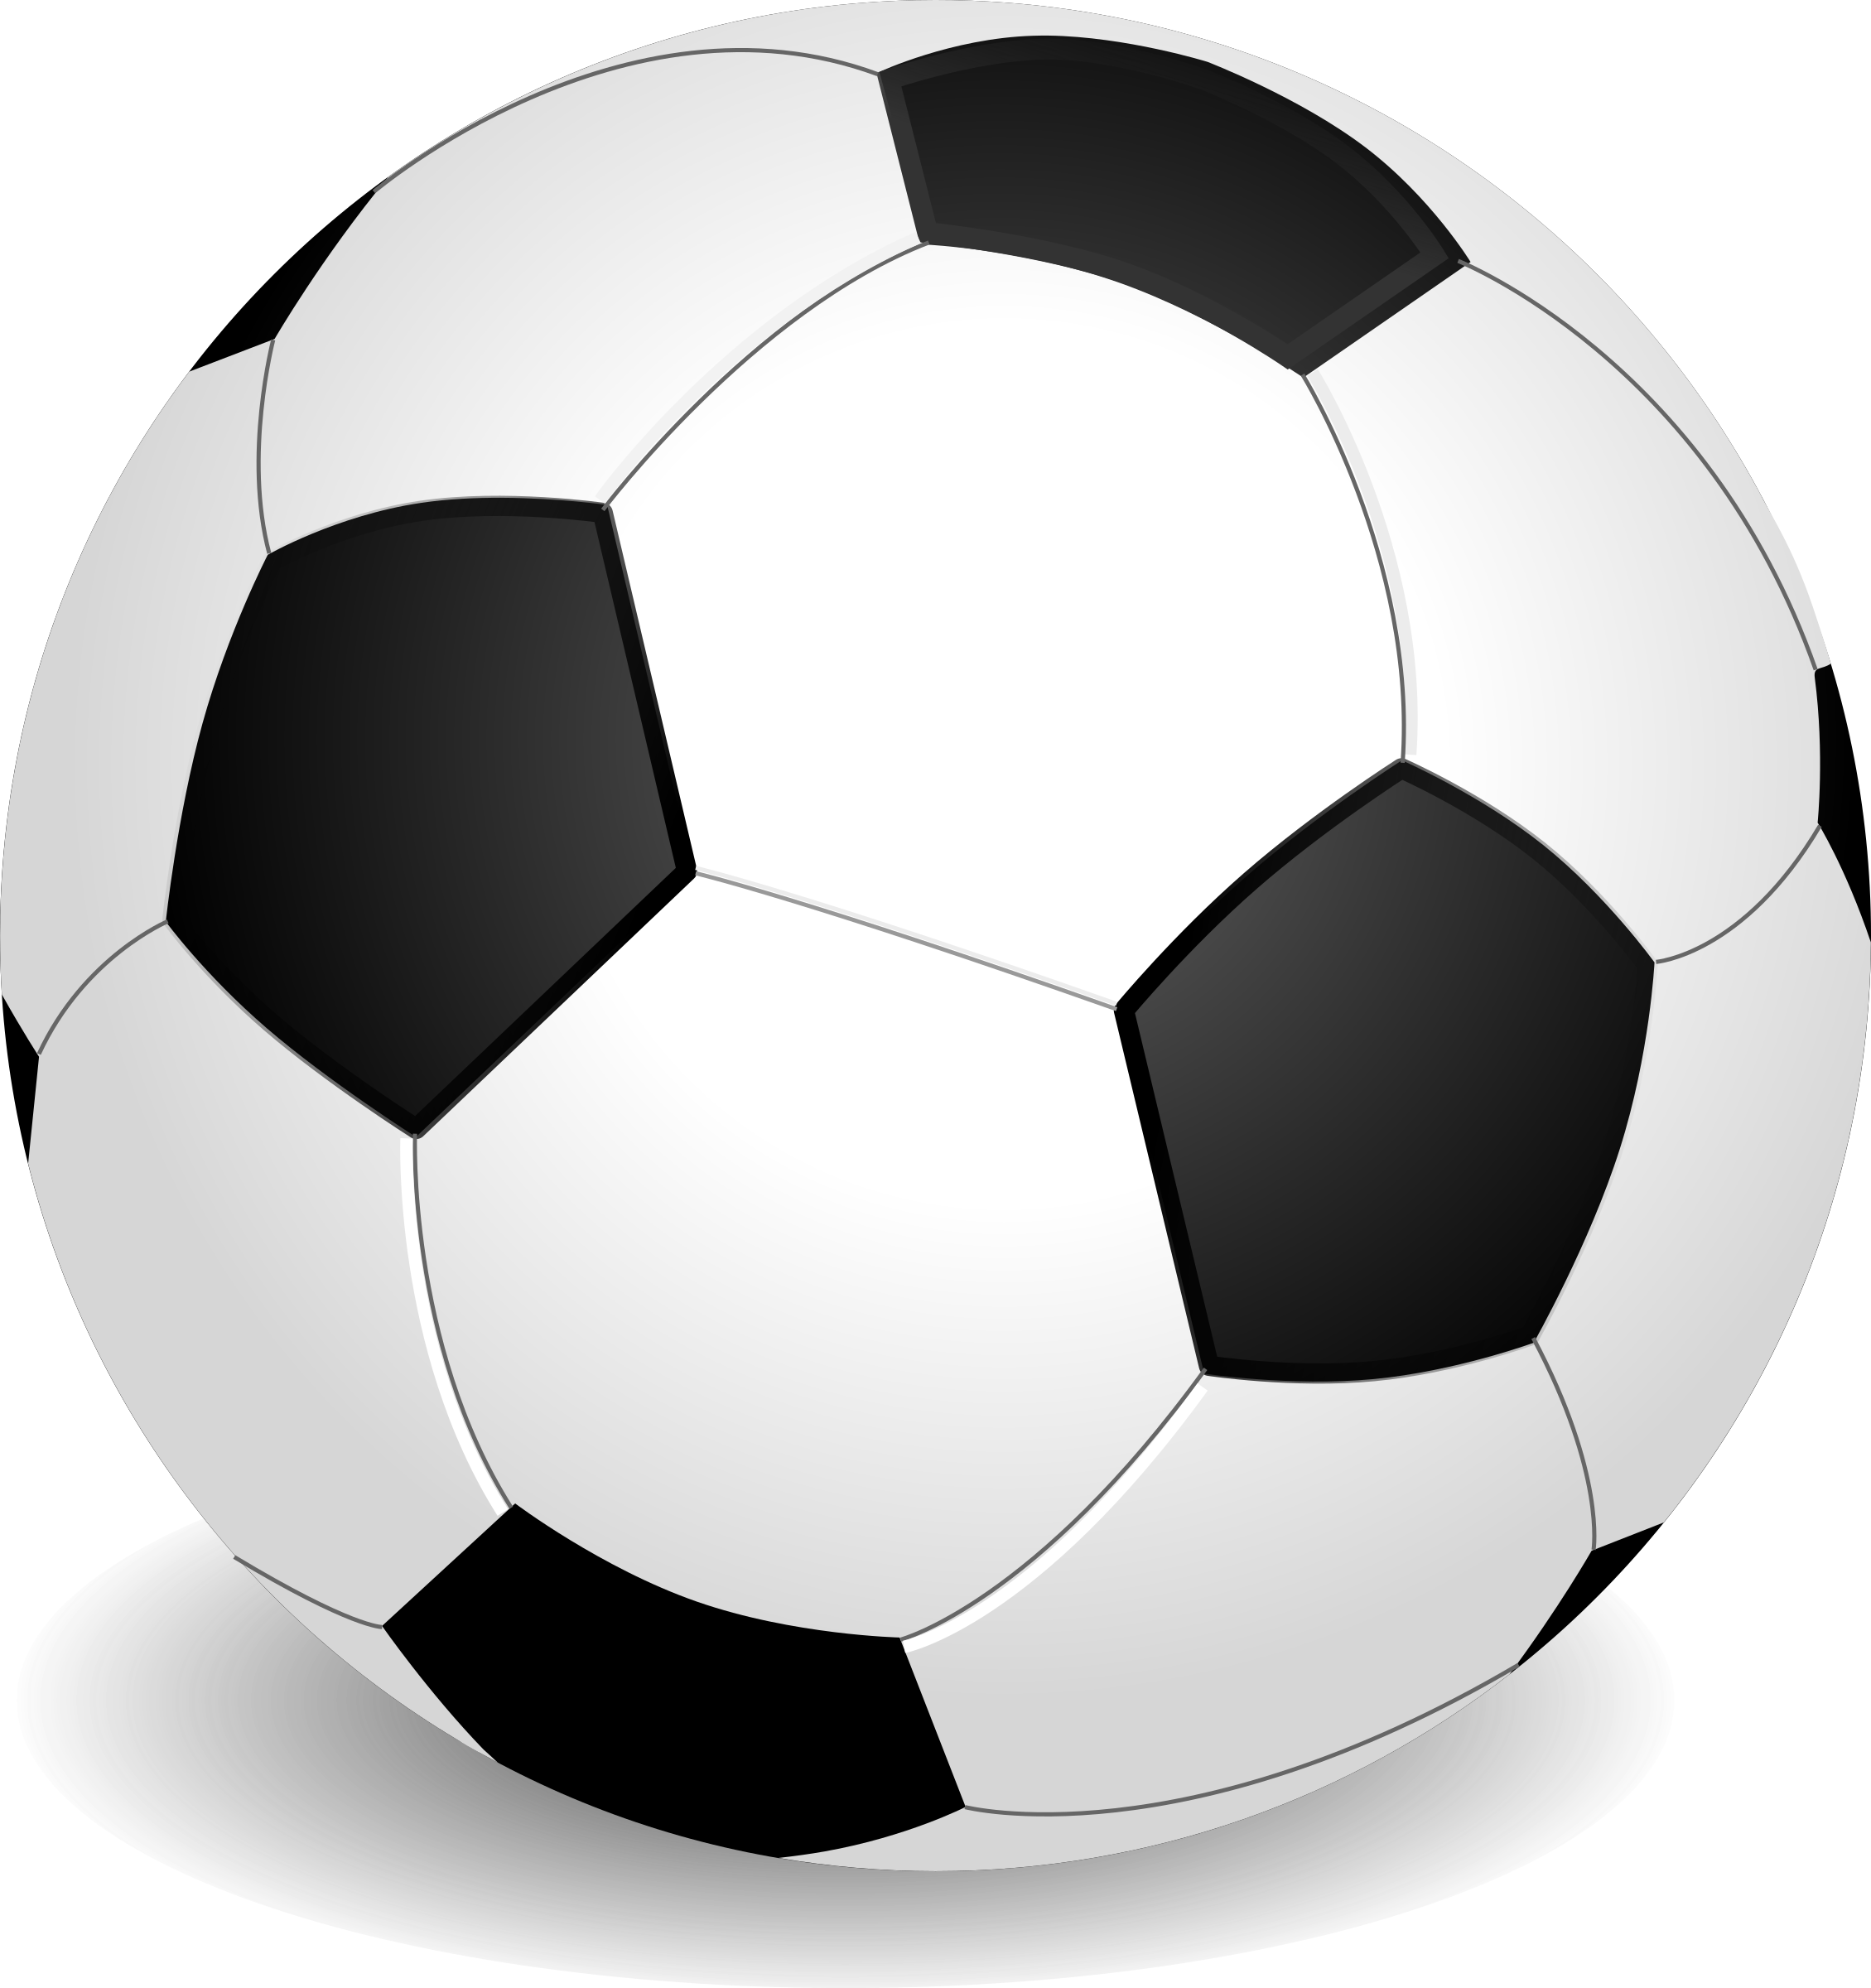 A football (soccer ball)